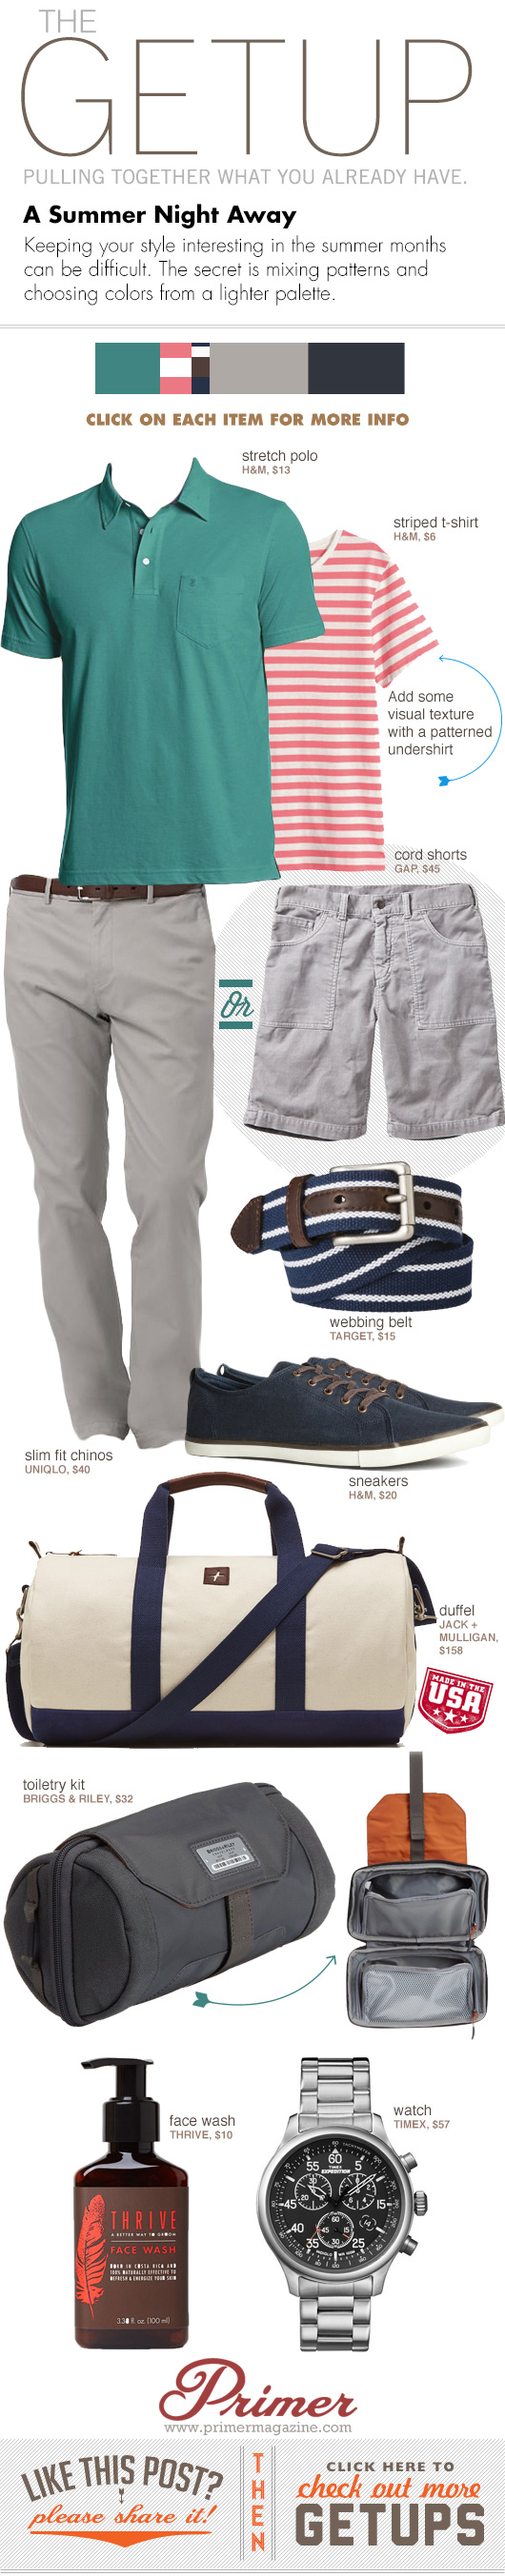 Getup Summer Night Away - Green polo, striped tshirt, gray pants or shorts, and blue sneakers